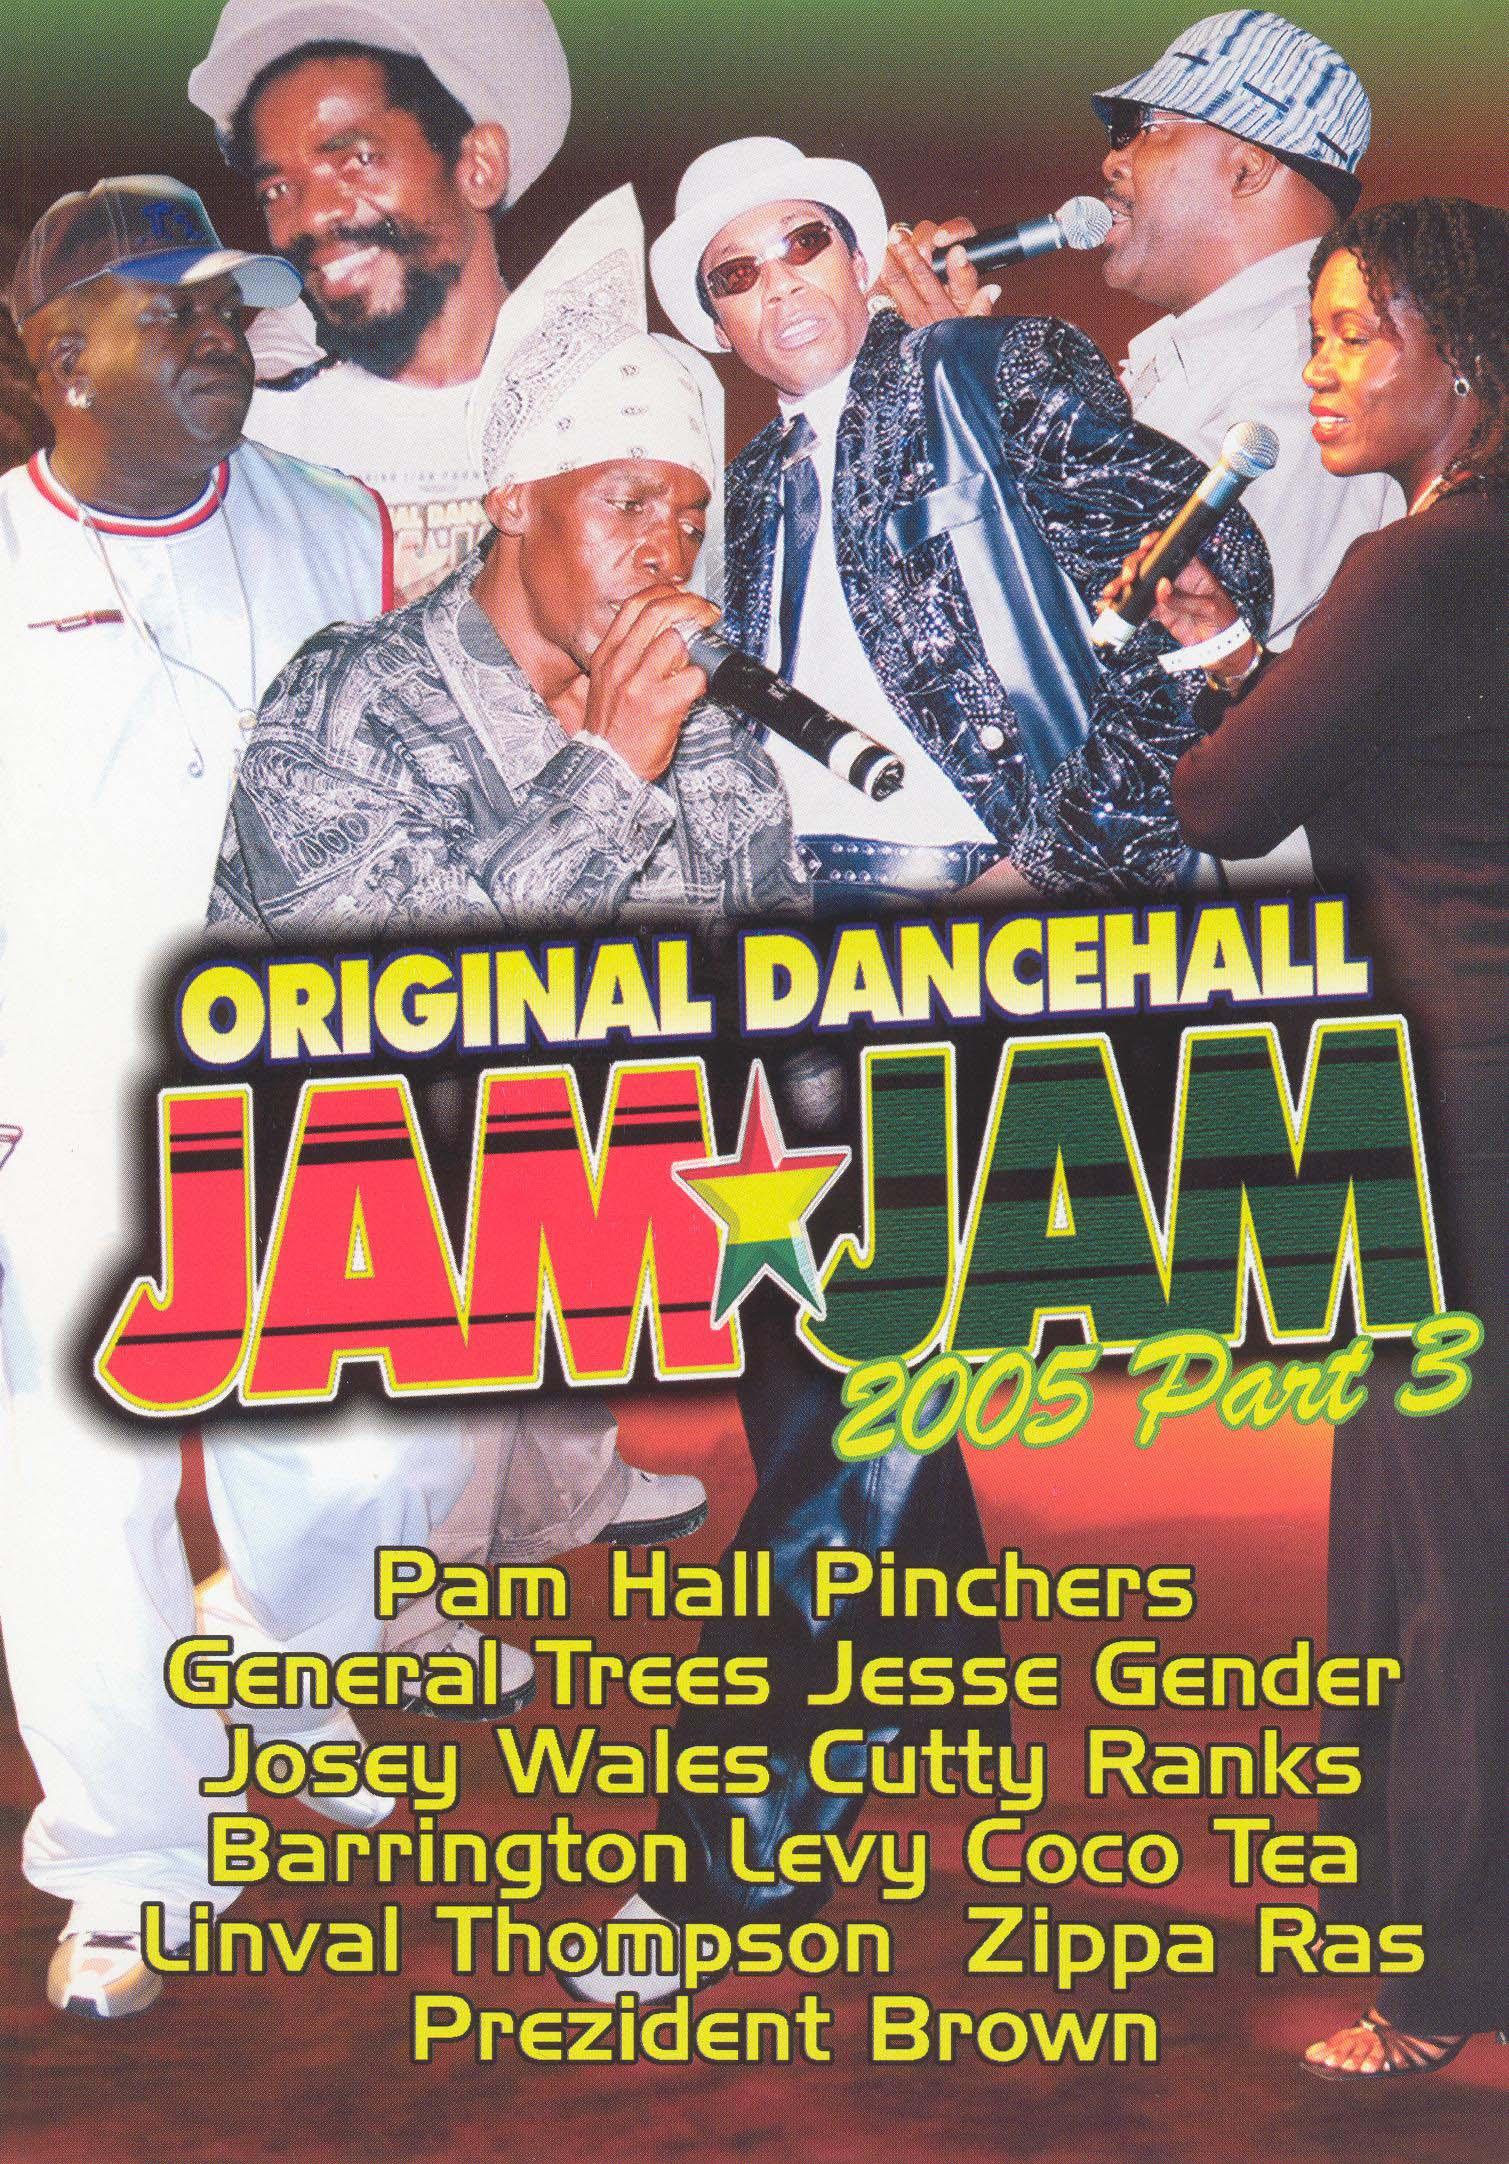 Original Dancehall Jam Jam 2005, Vol. 3